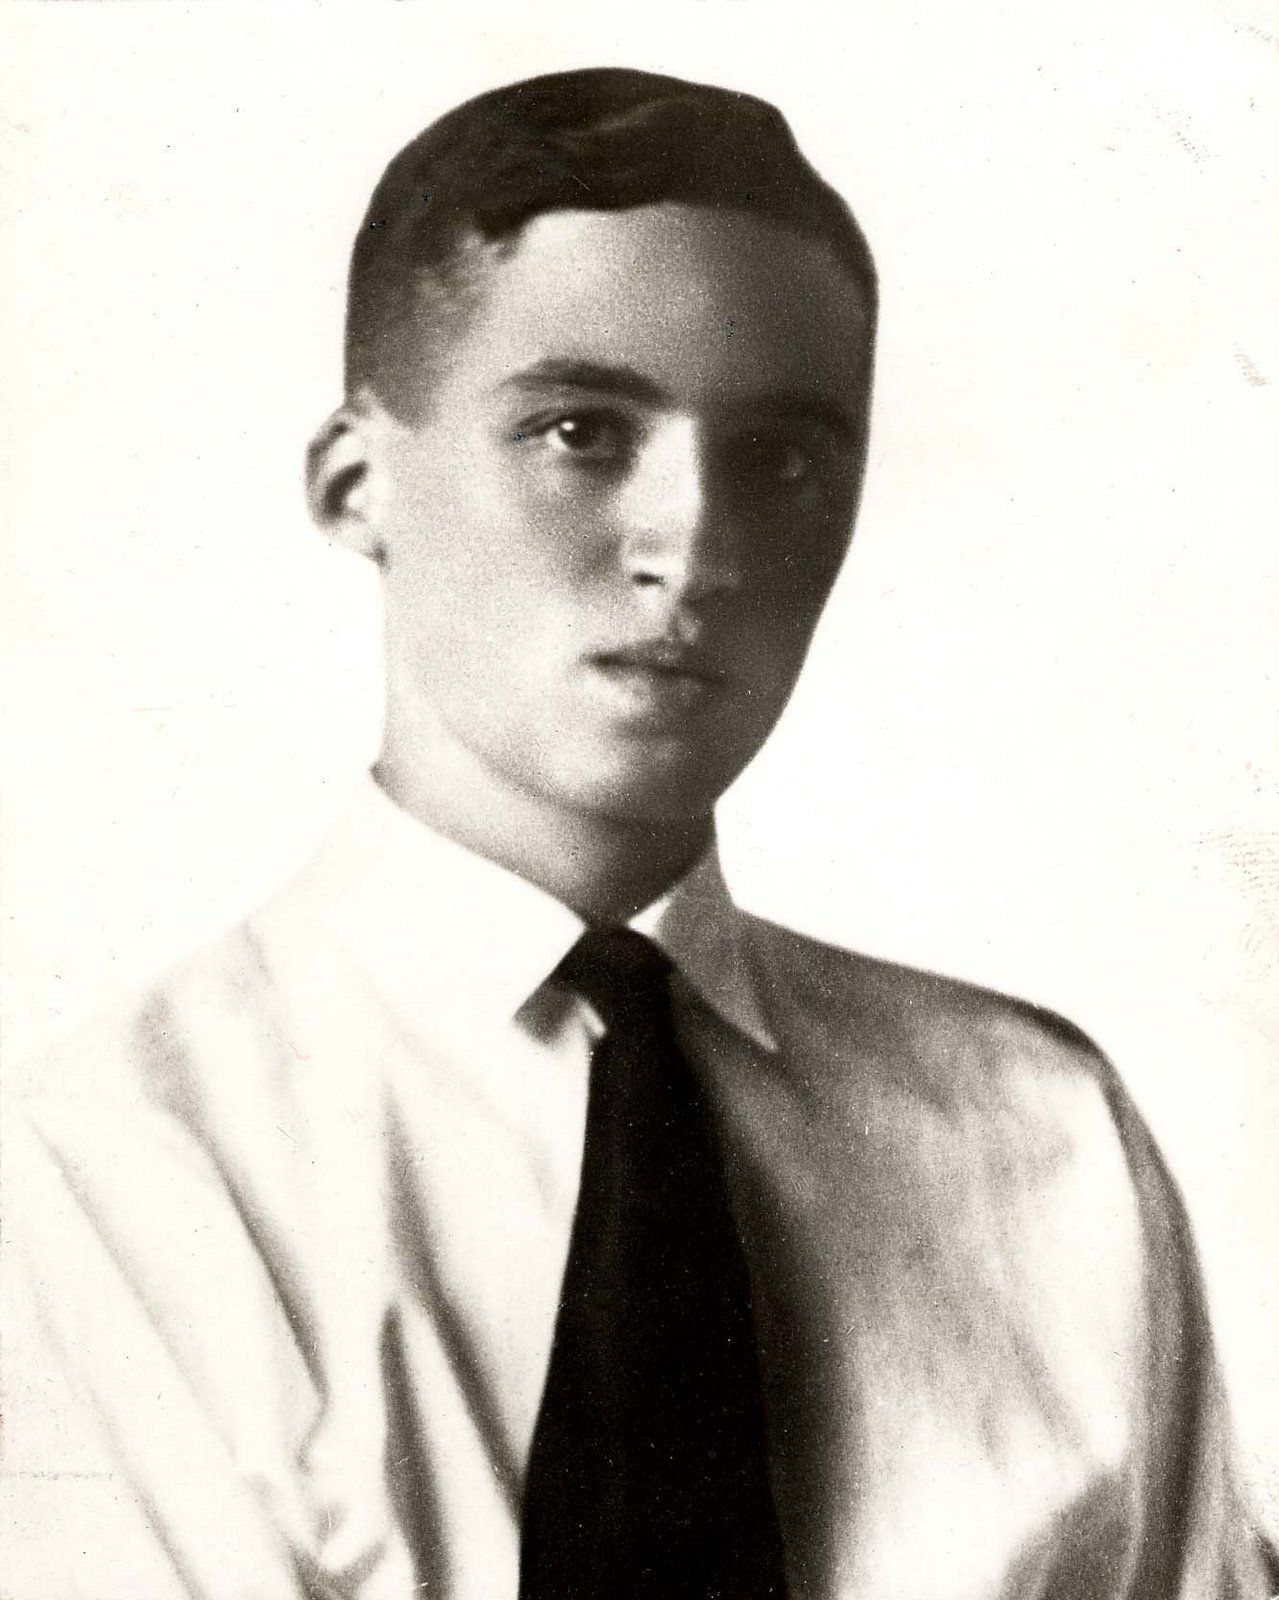 Helmut Hirsch (January 27, 1916 in Stuttgart – June 4, 1937 in Berlin) was a German Jew who was executed for his part in a bombing plot intended to destabilize the German Reich. Although a full and accurate account of the plot is unknown, his targets were understood to be the Nazi party headquarters in Nuremberg, Germany, and/or the plant where the antisemitic weekly propaganda newspaper Der Stürmer was printed.